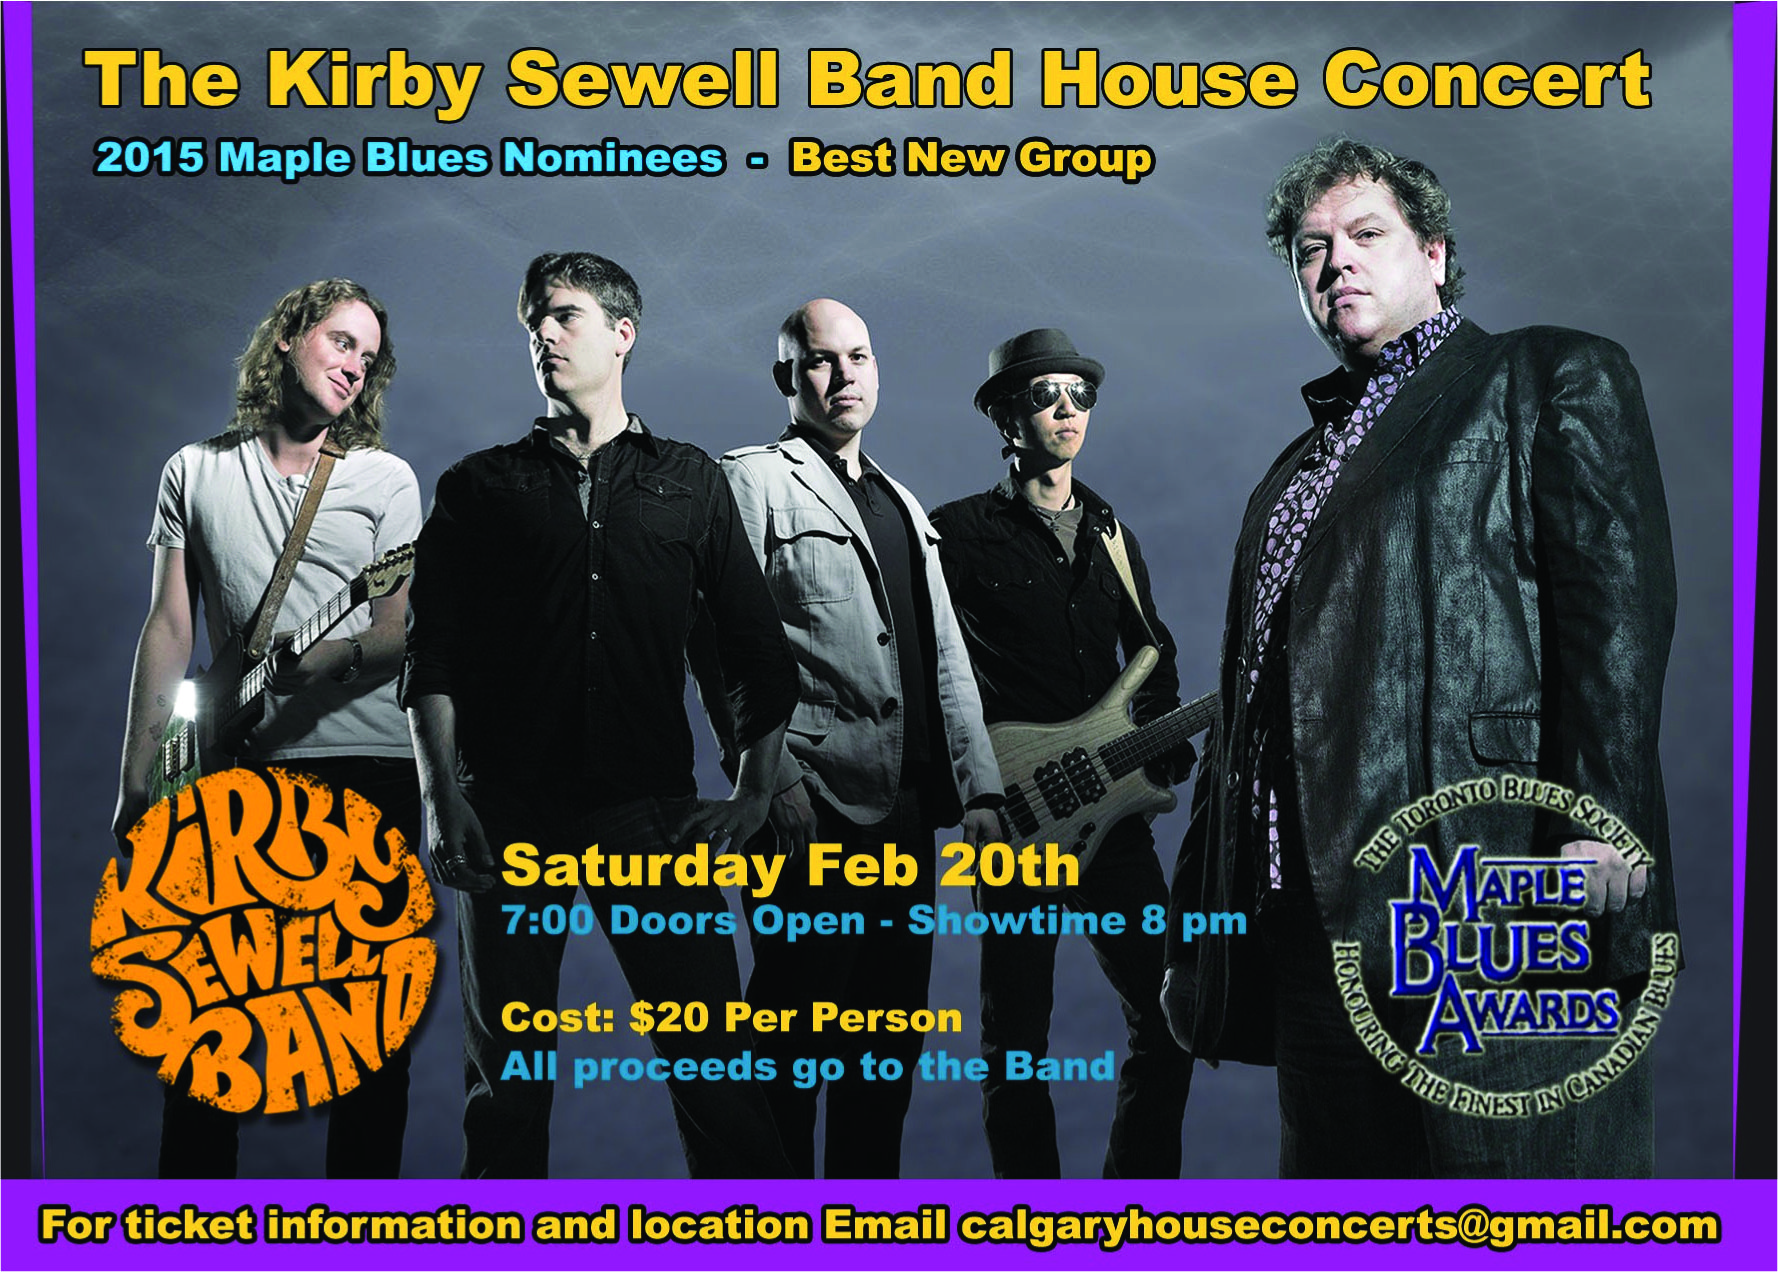 The Kirby Sewell Band House Concert February 20, 2016